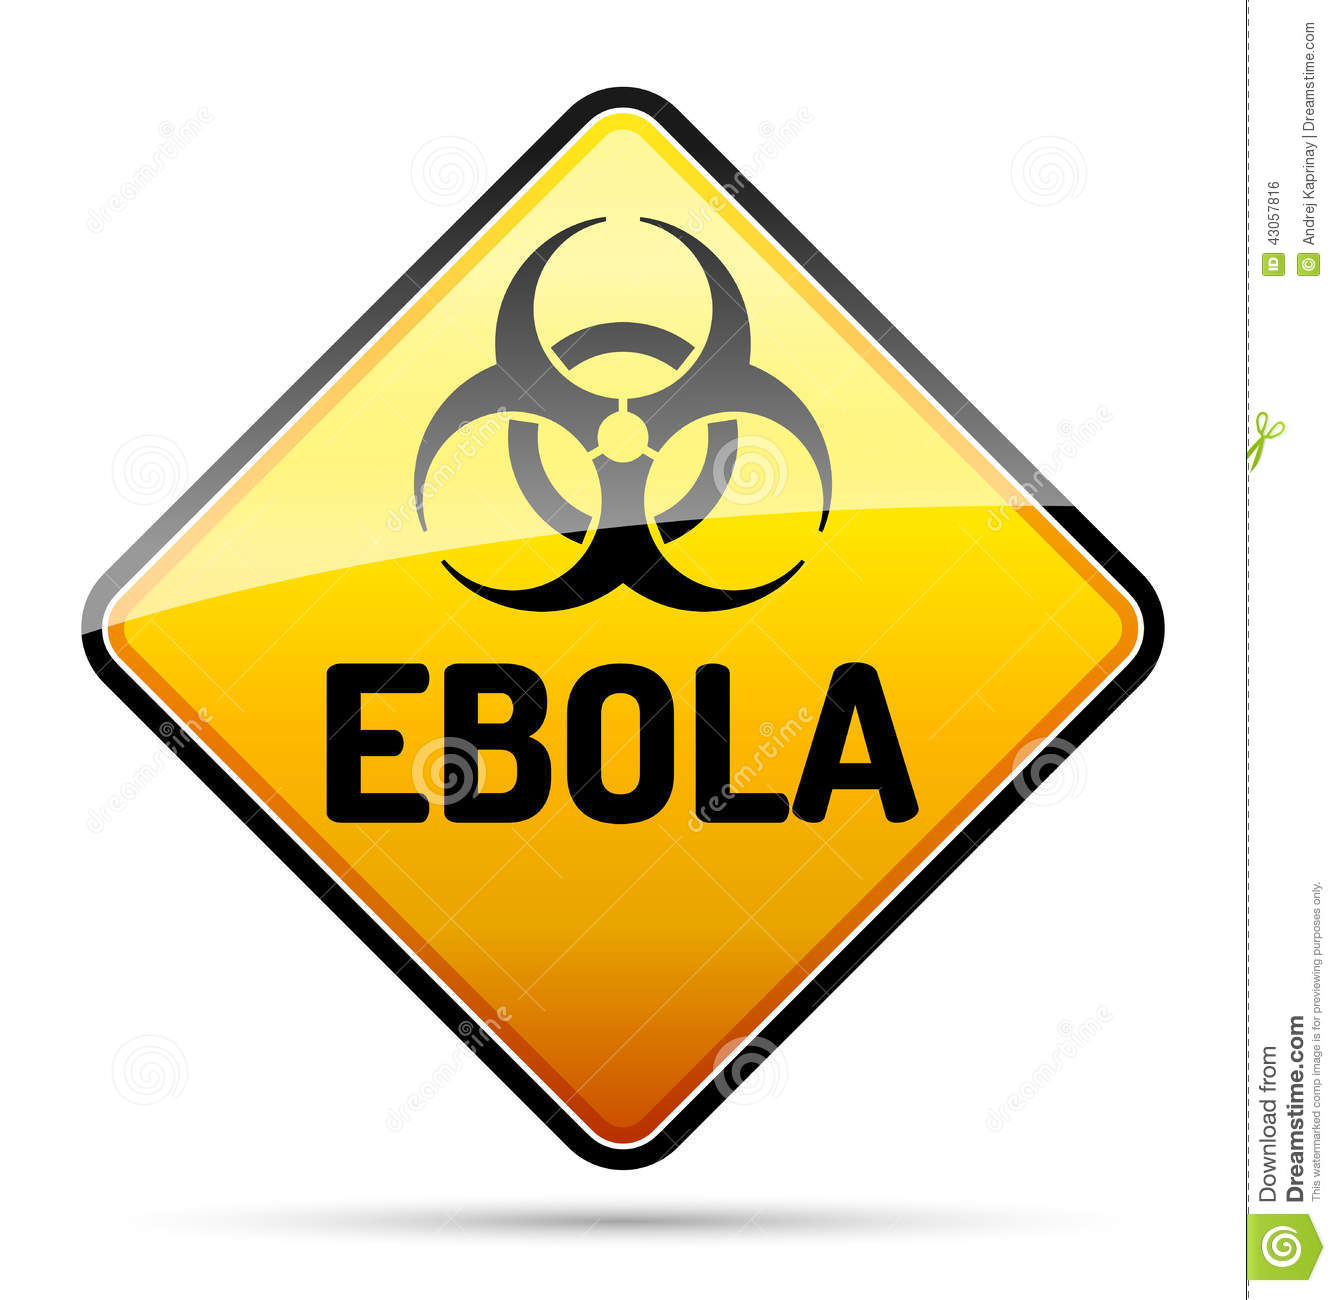 the dangers of ebola virus Ebola virus ebola virus is the cause of the 2013–2015 ebola virus epidemic outbreak in west africa, which has resulted in at least 27,678 suspected cases and 11,276 confirmed deaths (who, 2015.